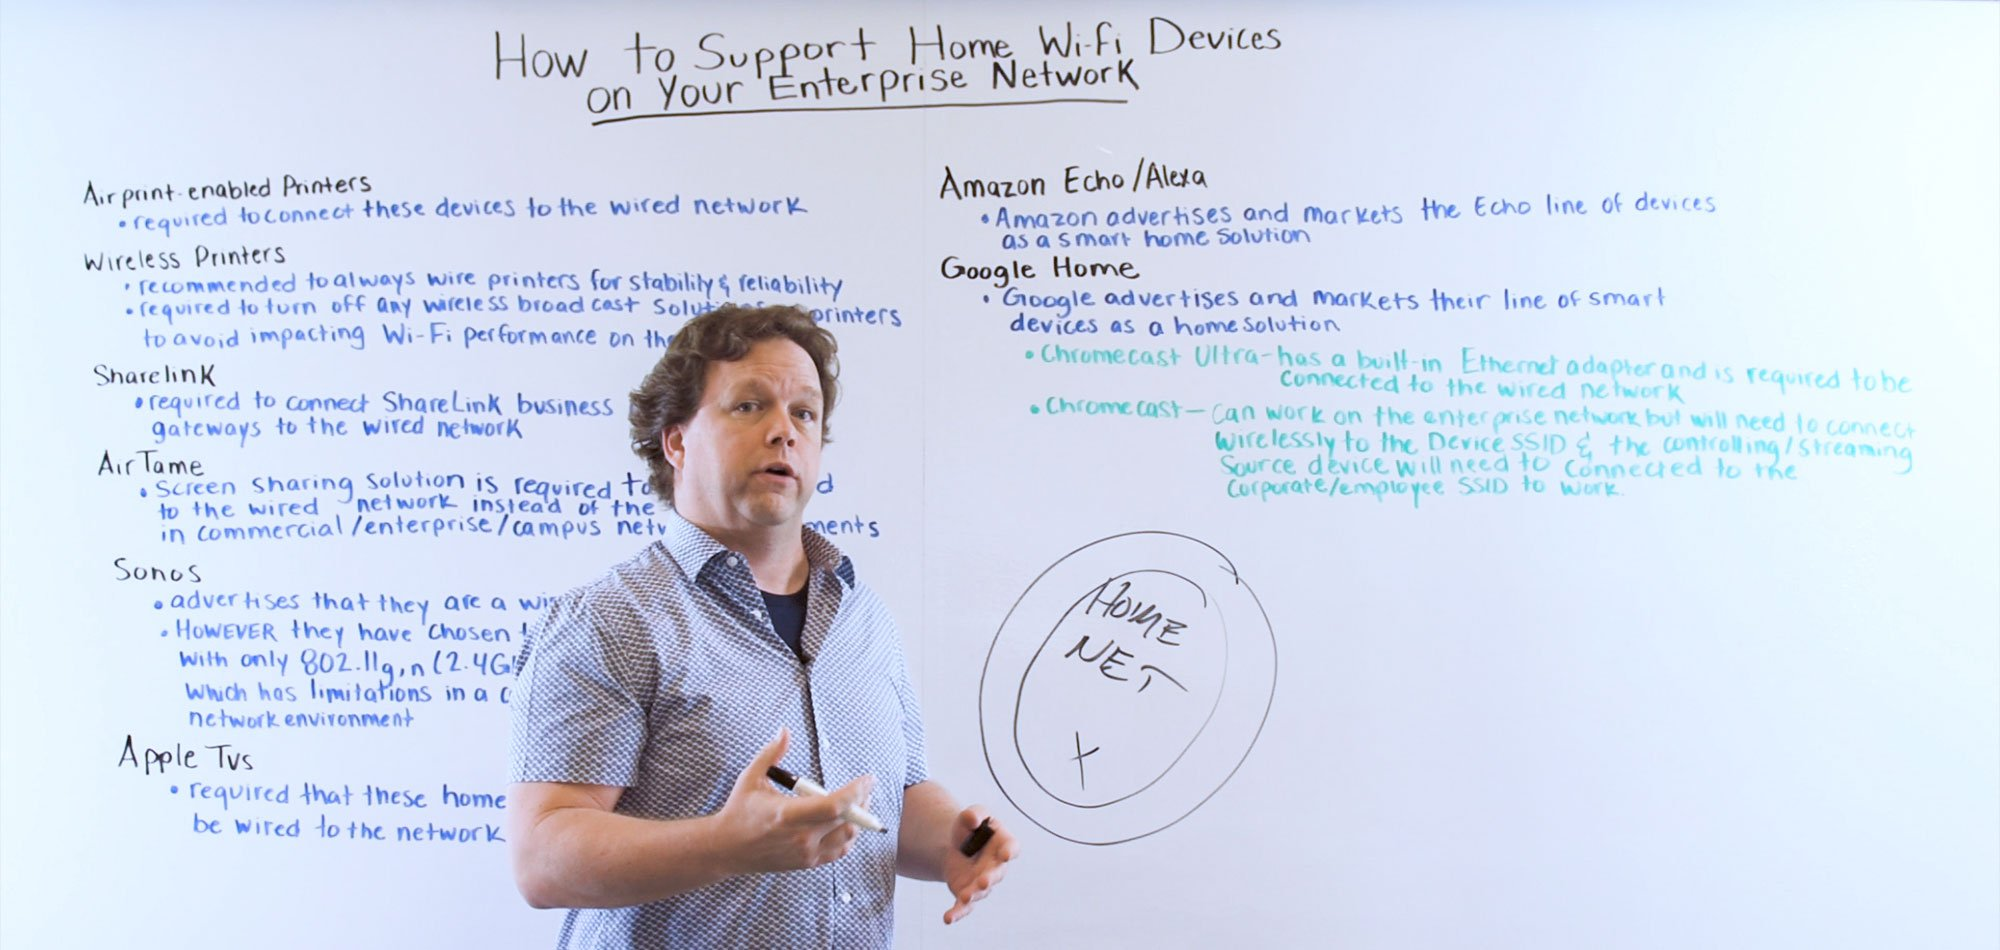 How to Support Home Wi-Fi Devices on Your Enterprise Network [Video]